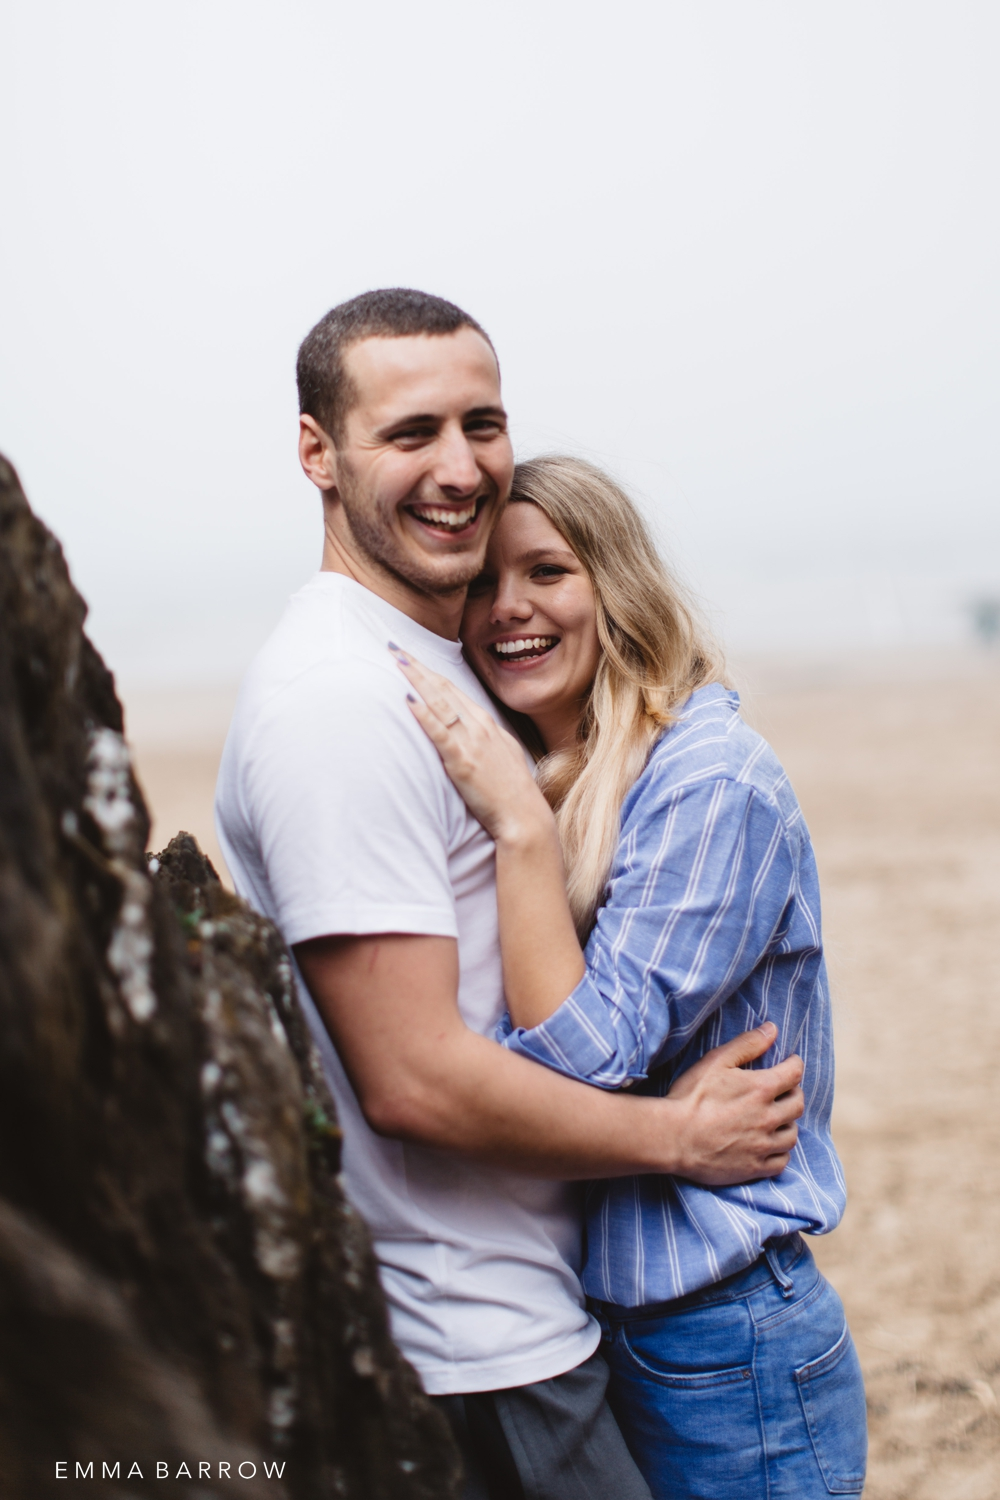 emmabarrow_hannahmattPreWed-60.jpg